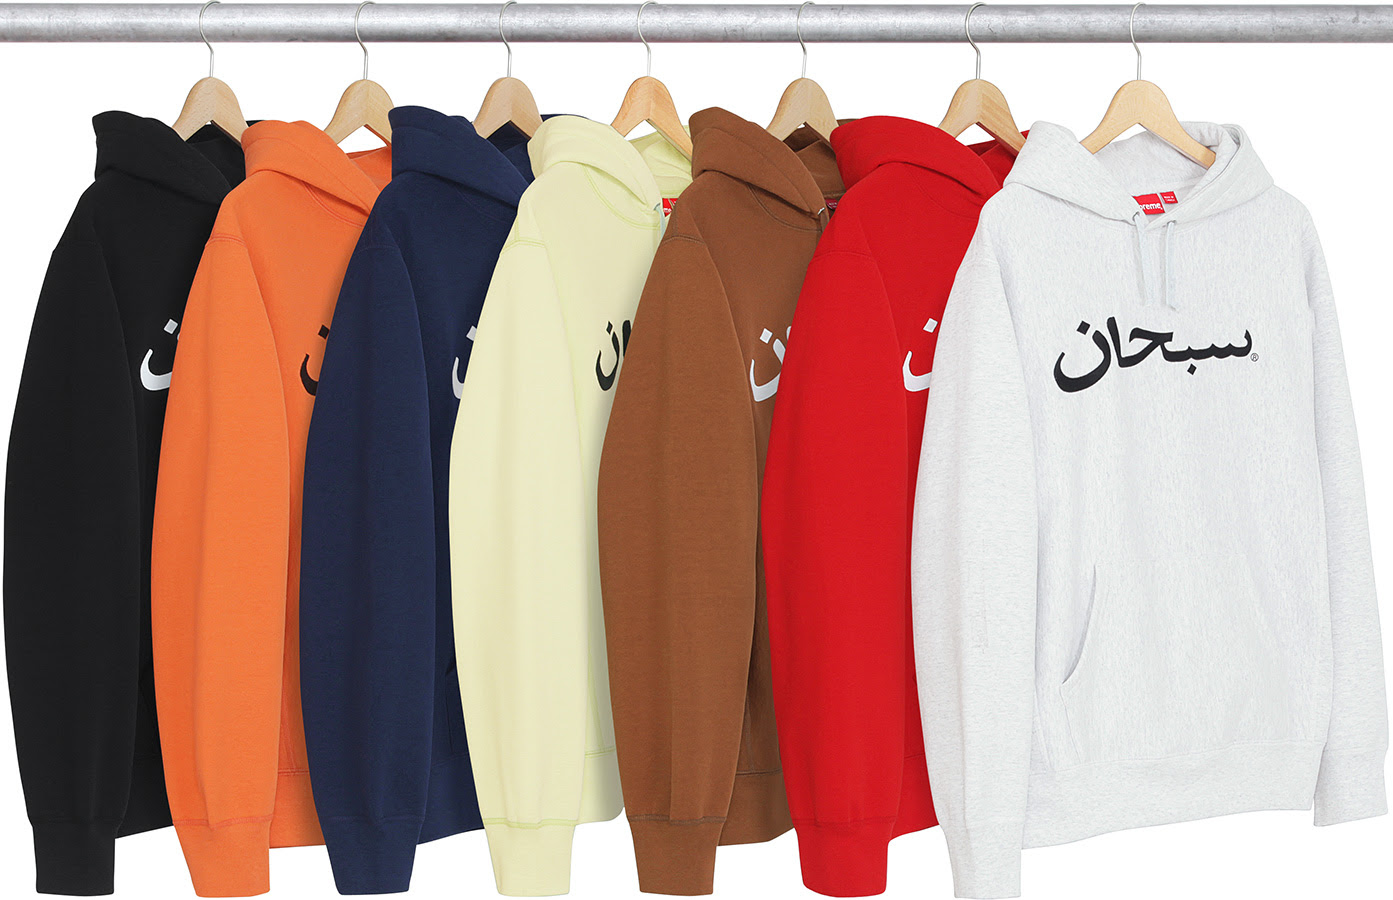 The Best Supreme Clothing Pieces From Fall Winter 2017